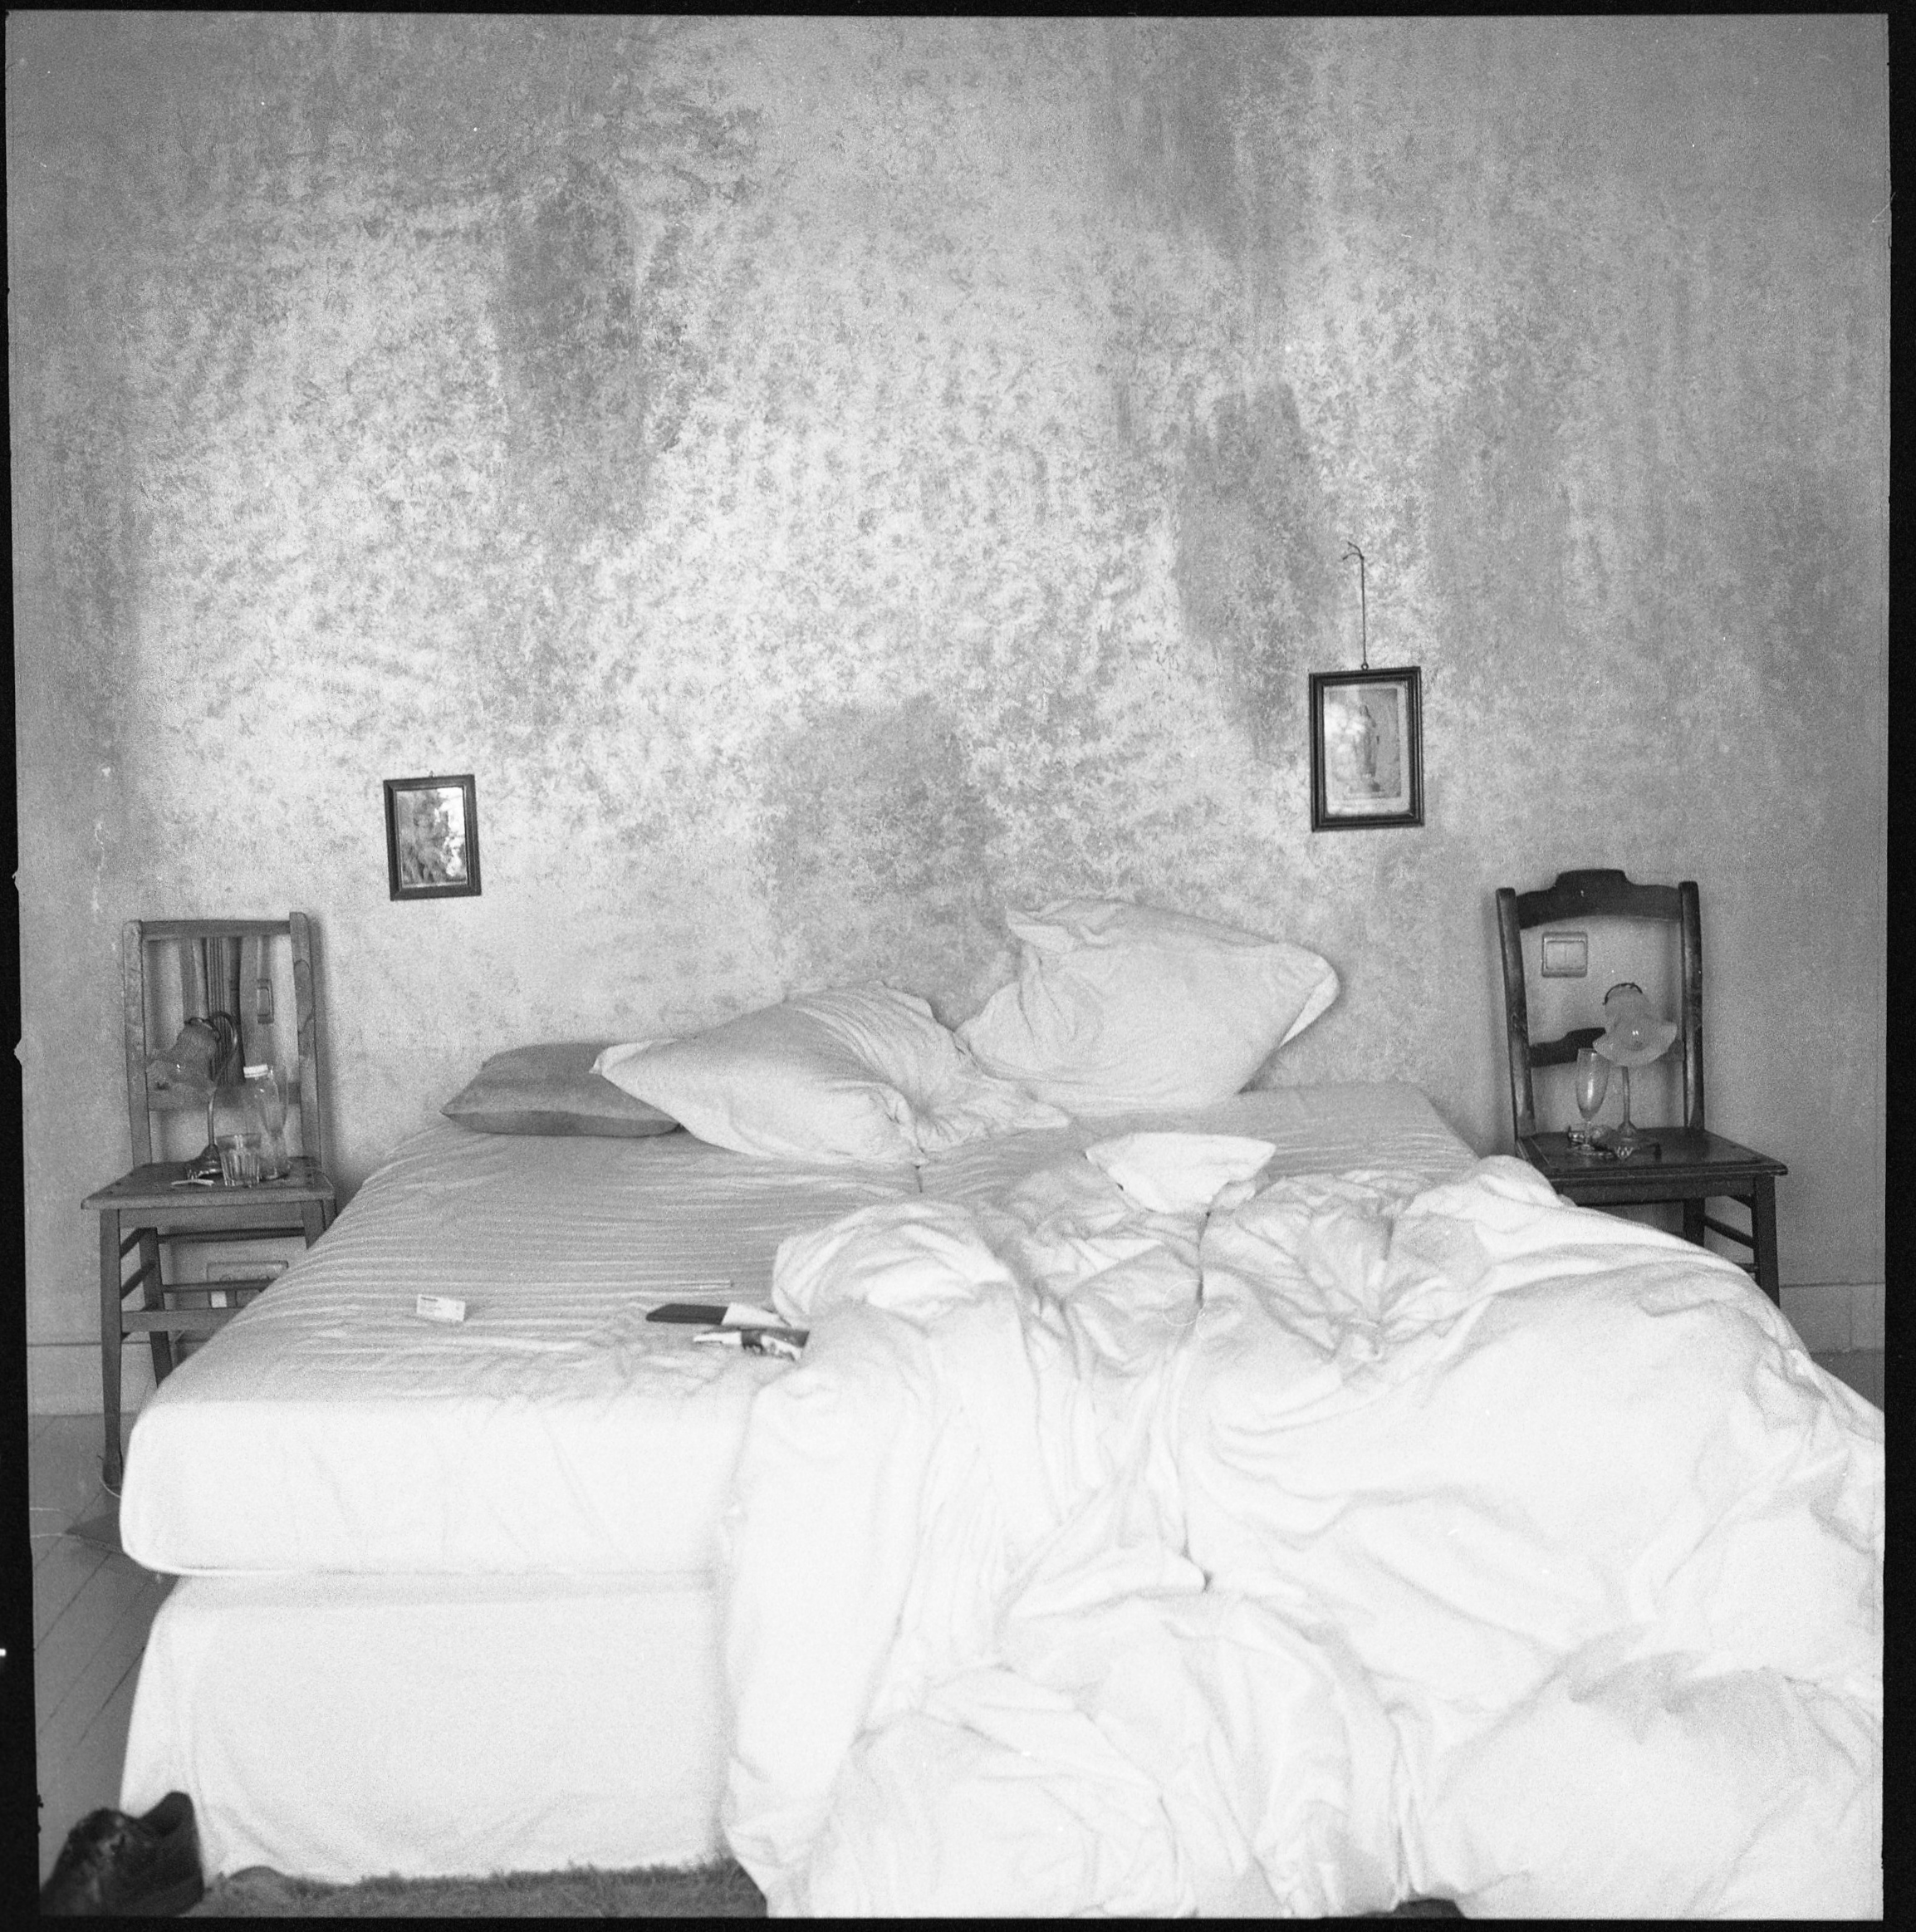 Gioia de Bruijn, Bed, Antwerp, Black and white Baryte print, 70 x 70 cm, 2016